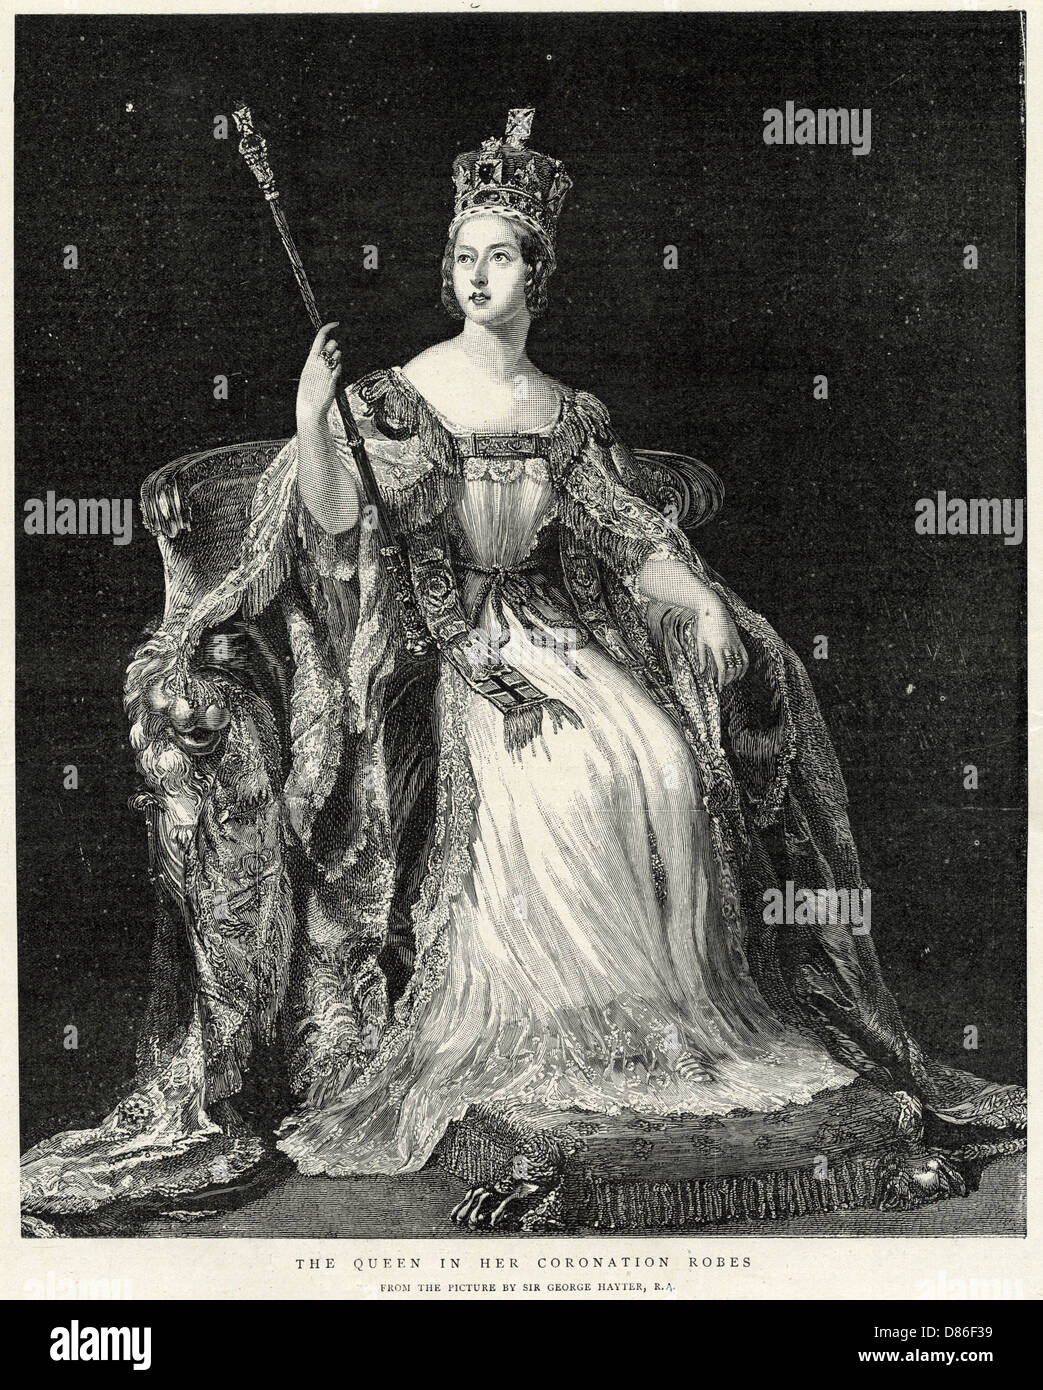 Queen Victoria In Her Coronation Robes - Stock Image